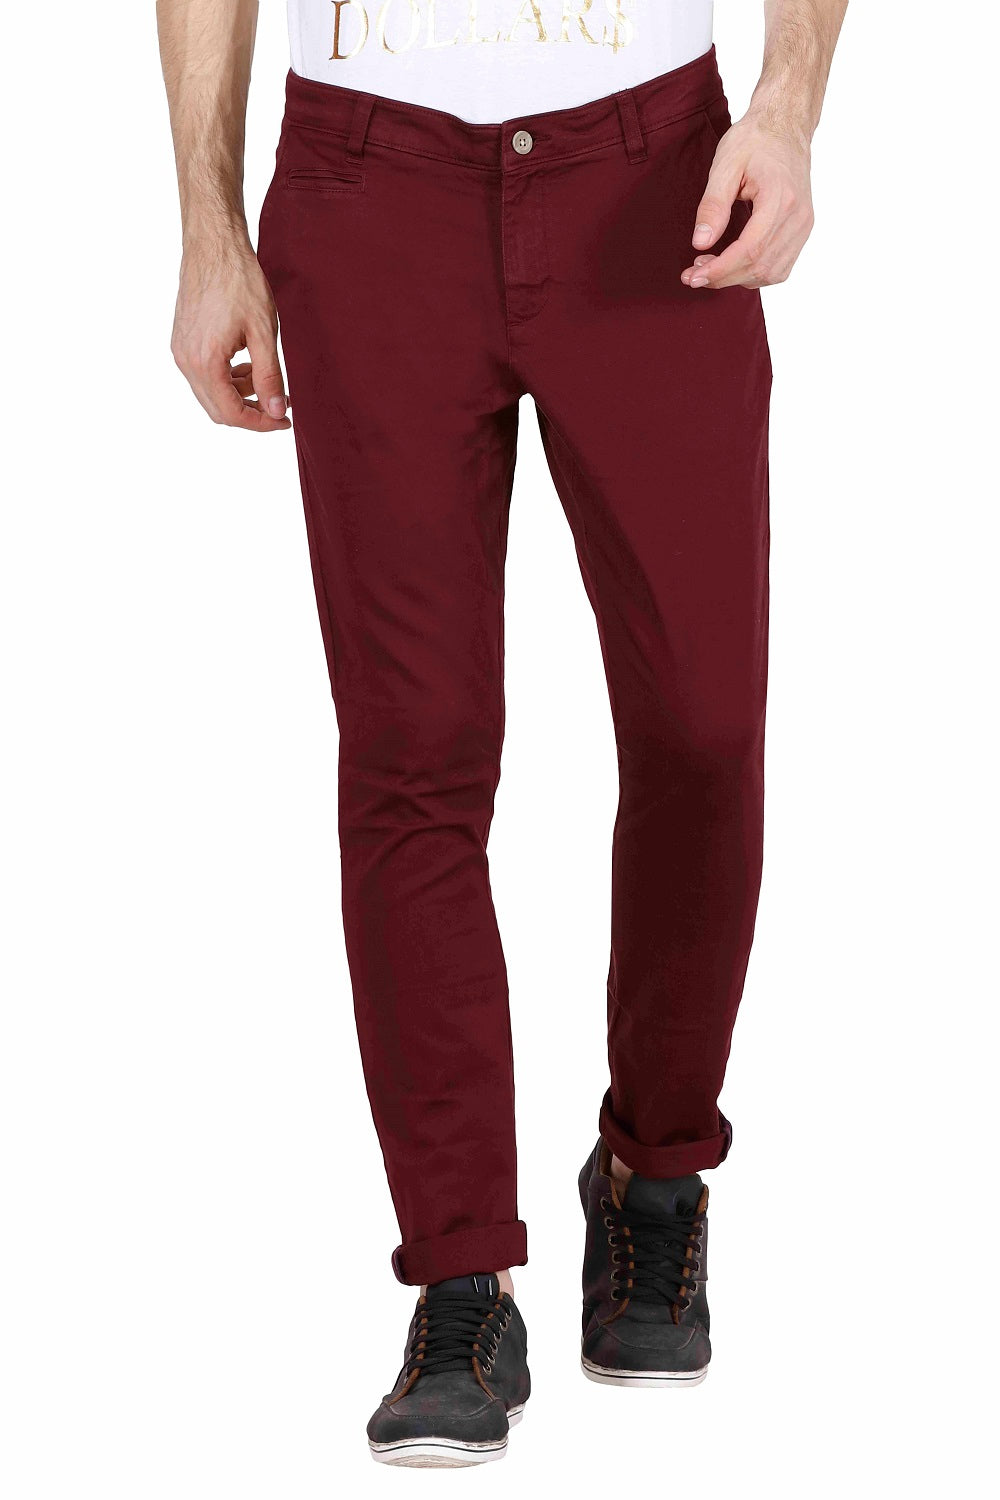 Men's Slim Fit Maroon Cotton Chinos